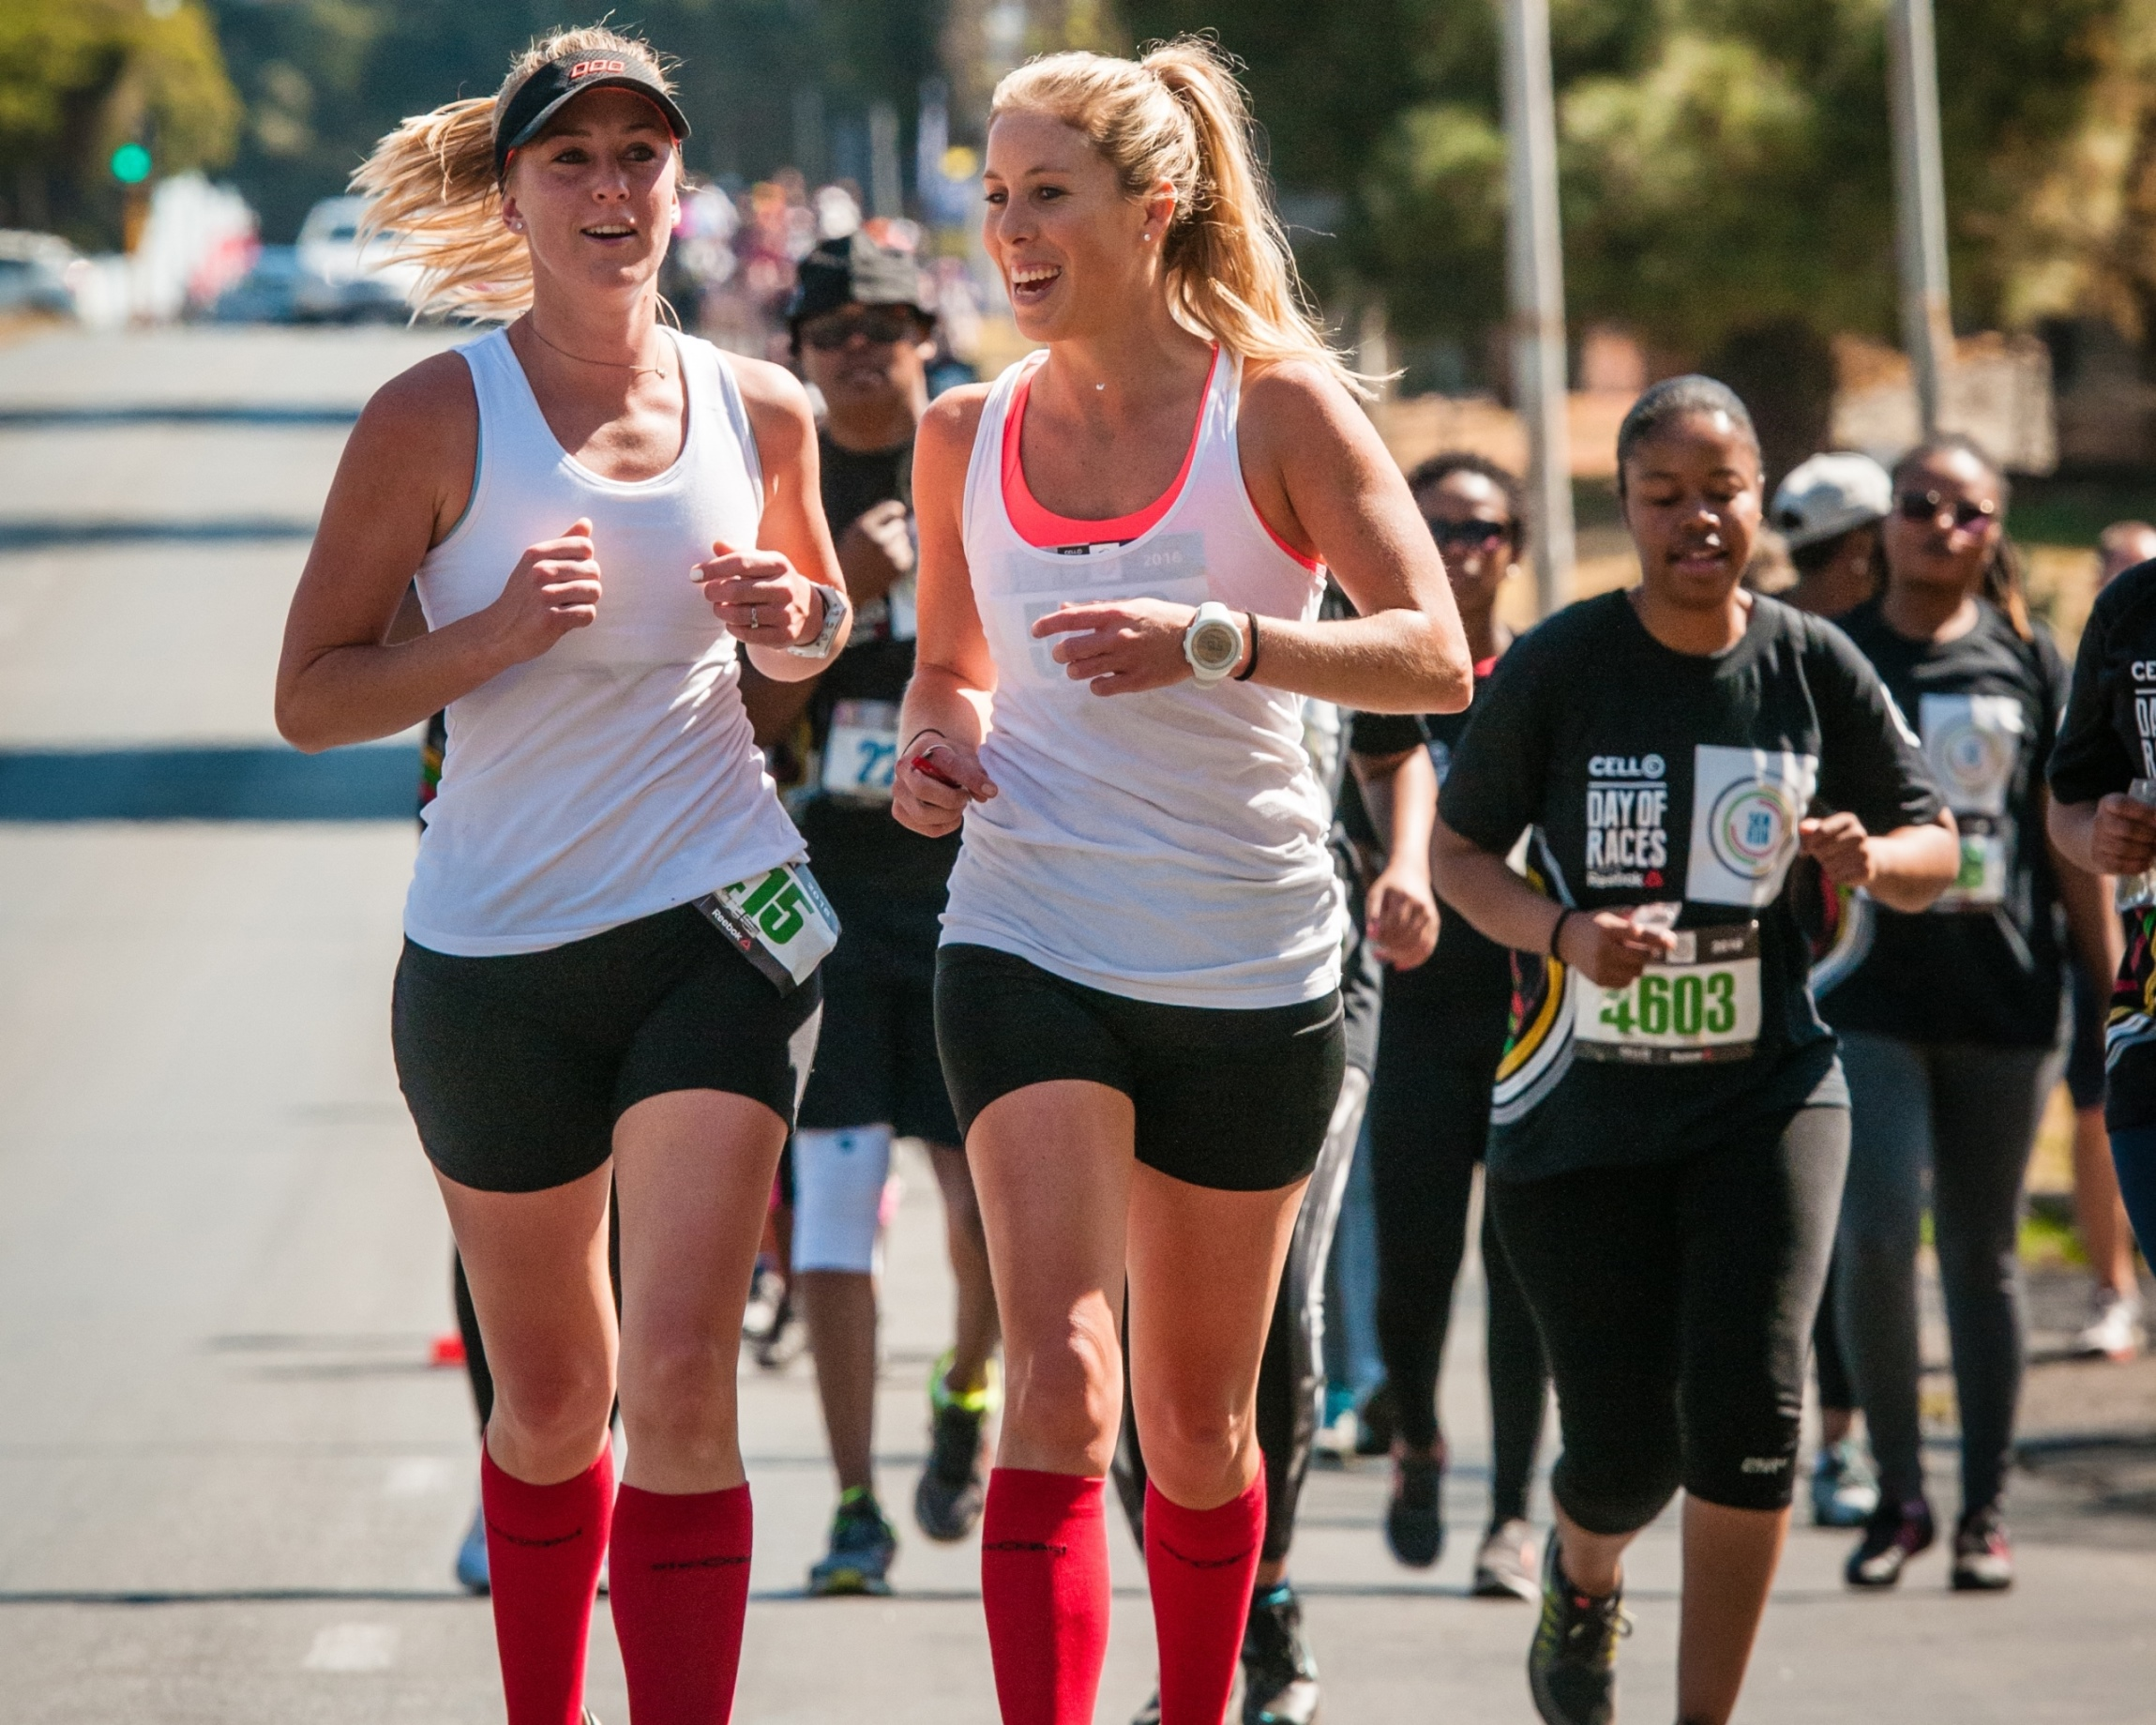 The the Cell C Day Of Races powered by Reebok will celebrate its Cape Town debut at the Green Point Athletics Stadium this coming Sunday, 11 September 2016.  The theme of the event is 'find your fit'.  Entrants can choose between five exciting start waves:   1. pretty fit, 2. pace makers (50 years+), 3. sole mates (pairs), 4. young, fast & free and 5. anything goes.   The 6th and final wave, the elite race, will close off the day's racing and will be the source of much excitement. Seen here:  Runners and fitness enthusiasts in action at the Cell C Day Of Races powered by Reebok in Johannesburg at the end of August.  Photo Credit:  David Tarpey